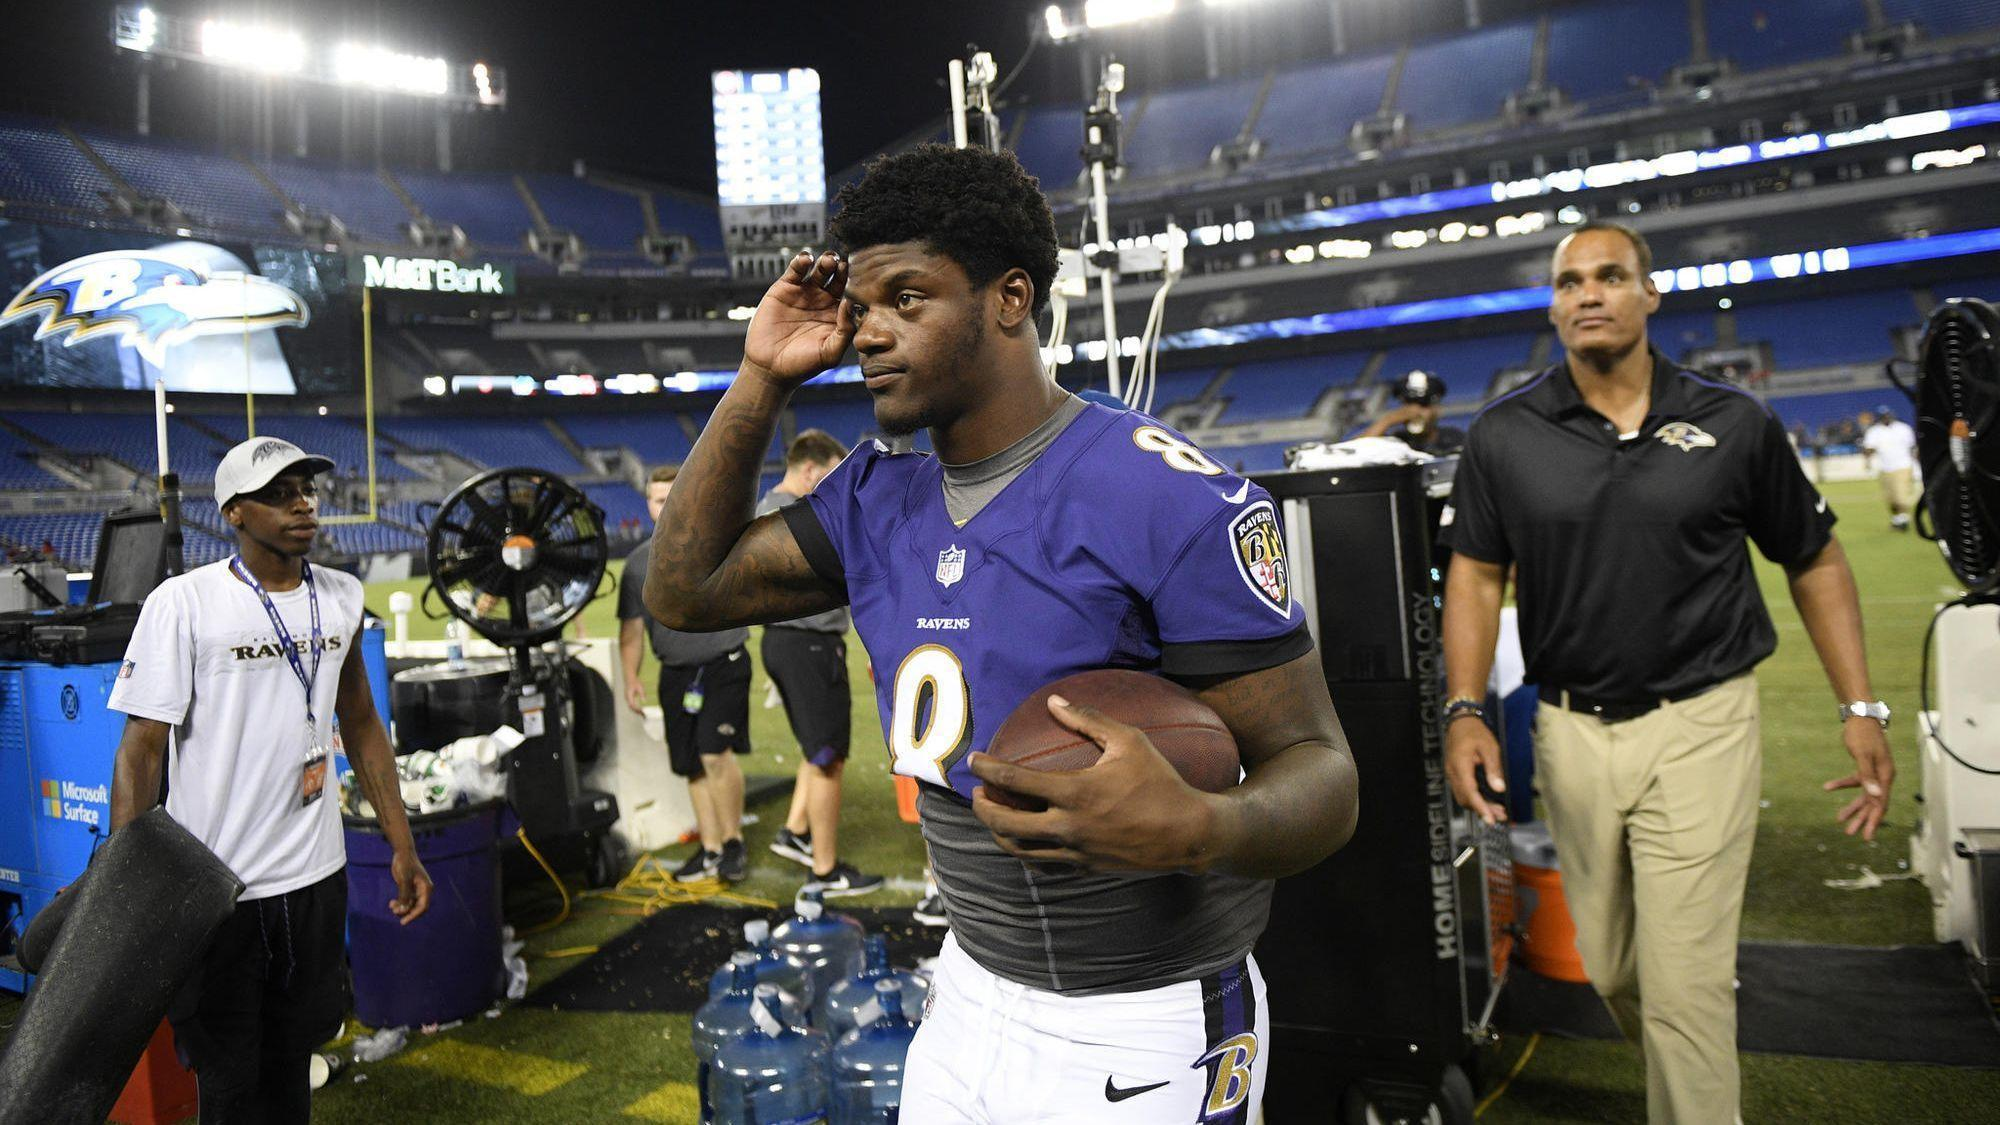 4729bec01 Ravens rookie Lamar Jackson enters NFL with a lifelong will to play  quarterback - Baltimore Sun